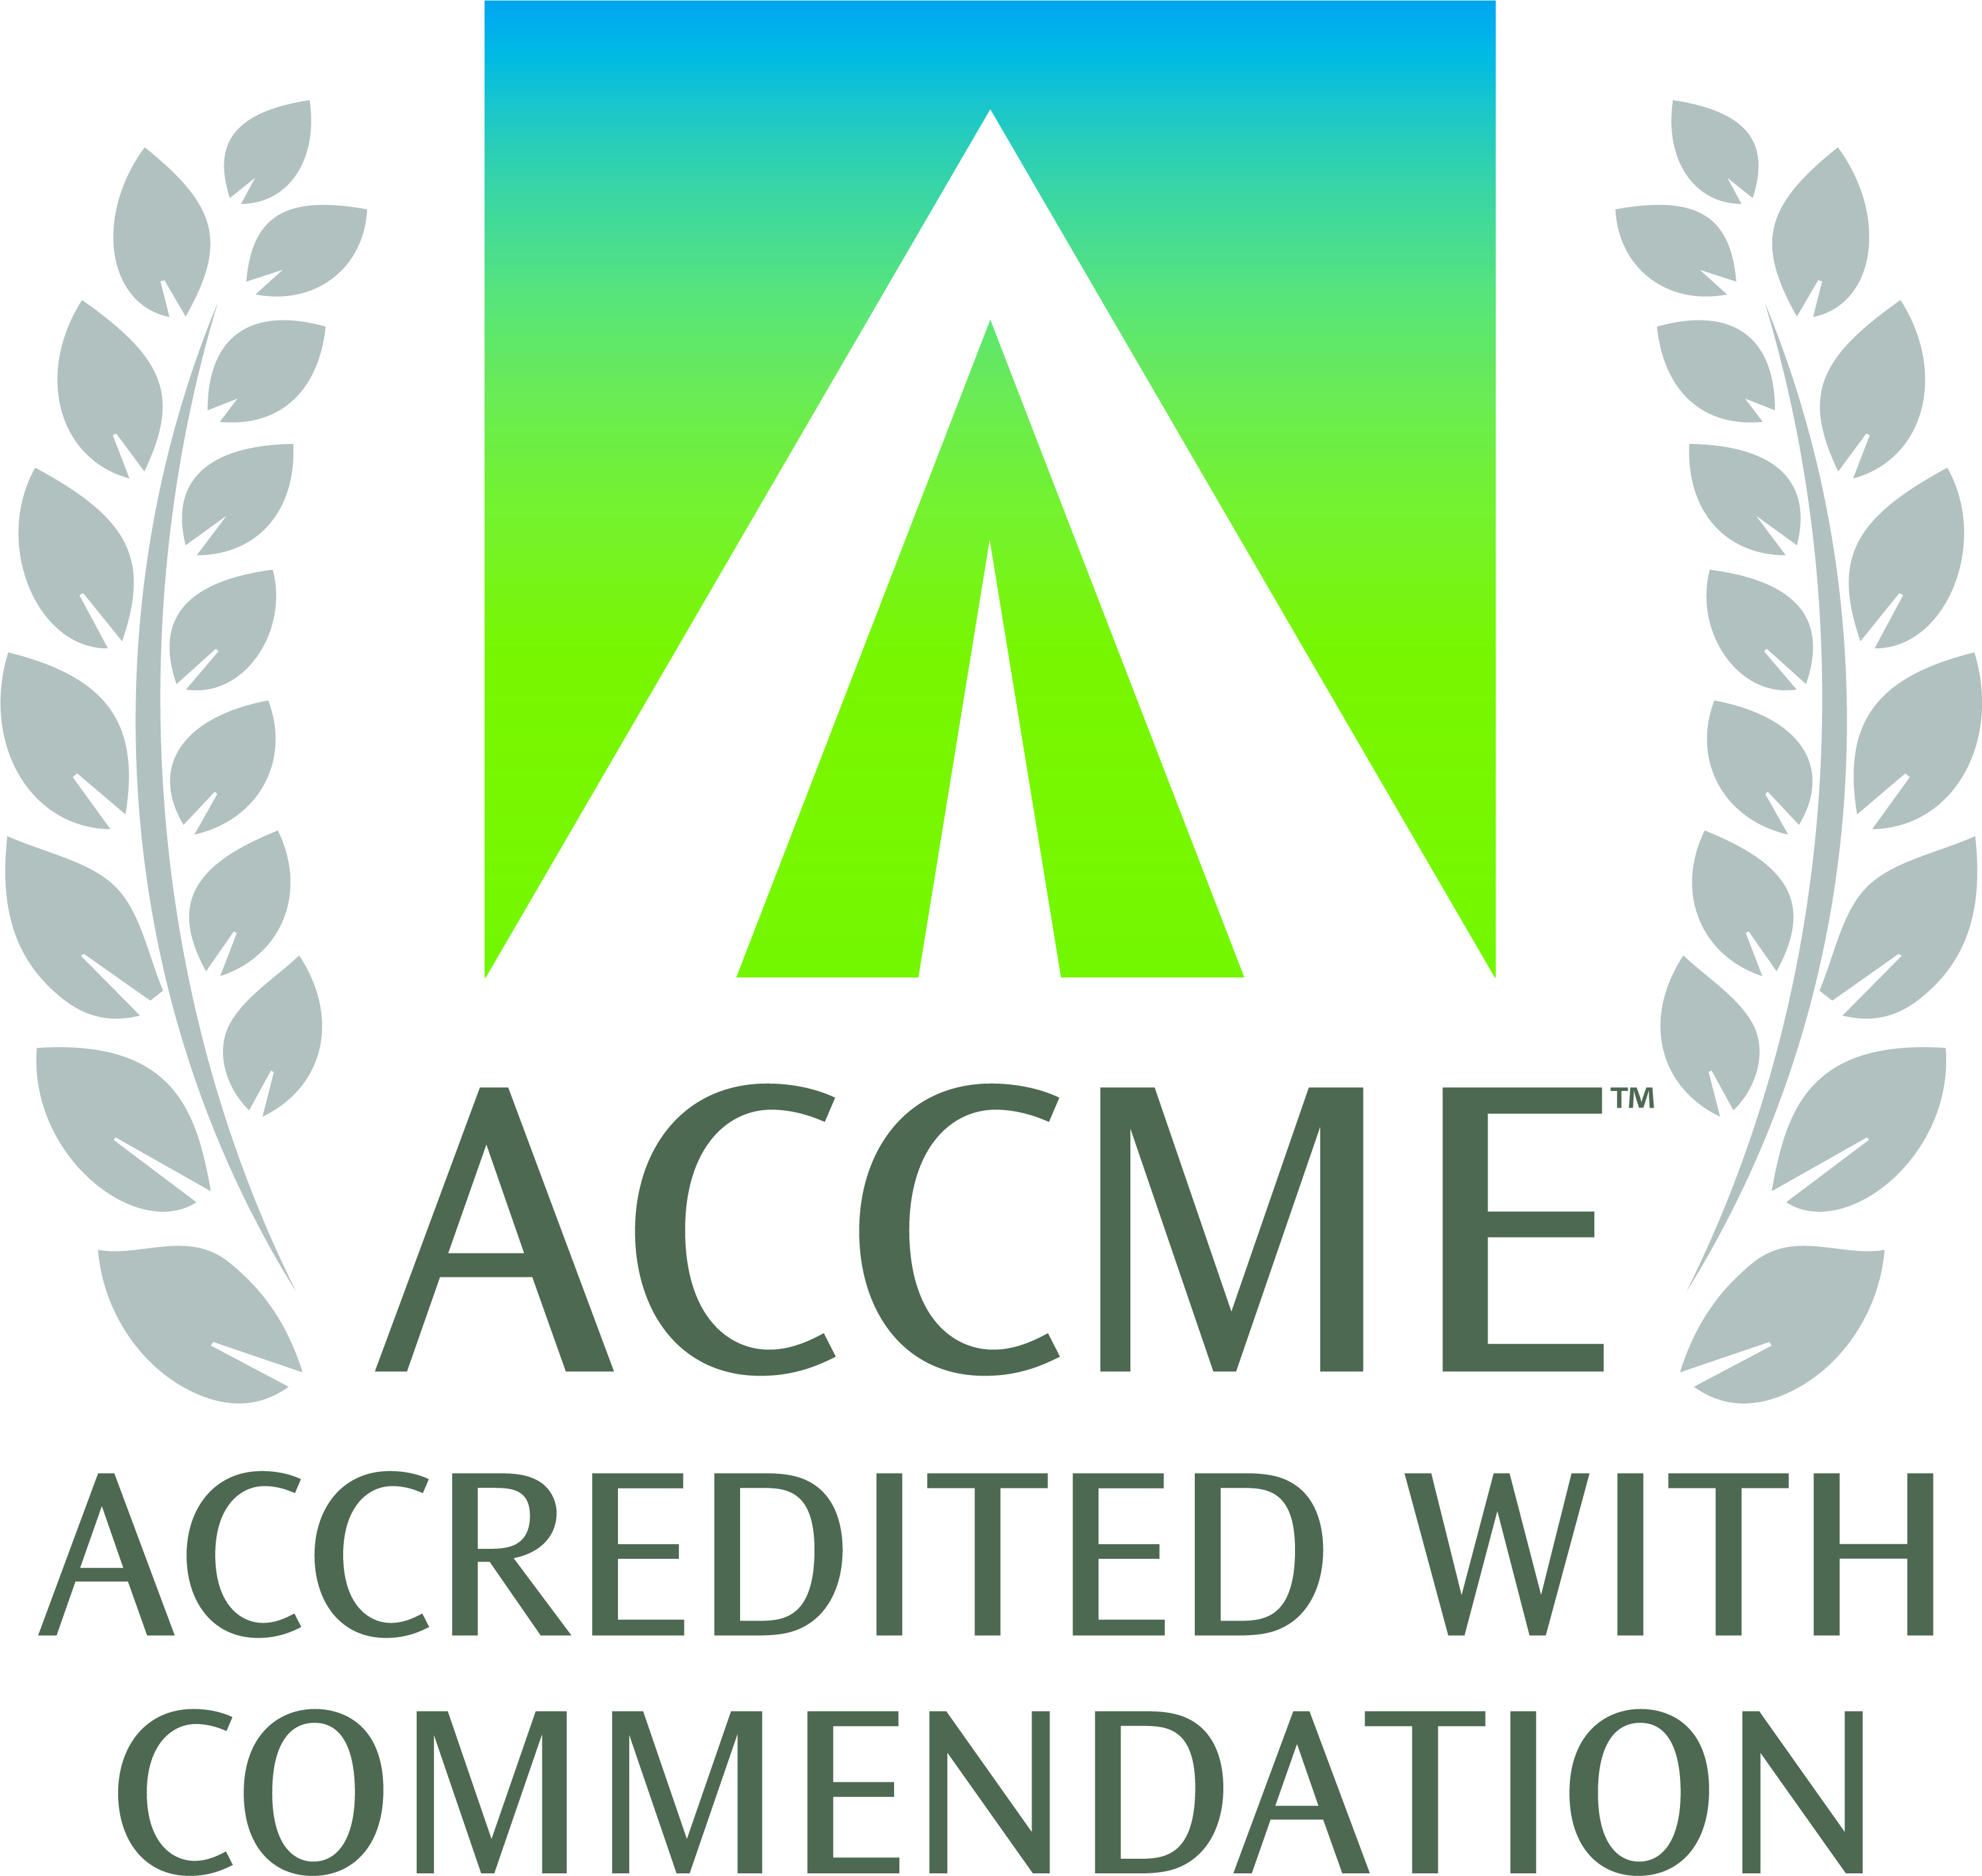 ACCME-commendation-full-color